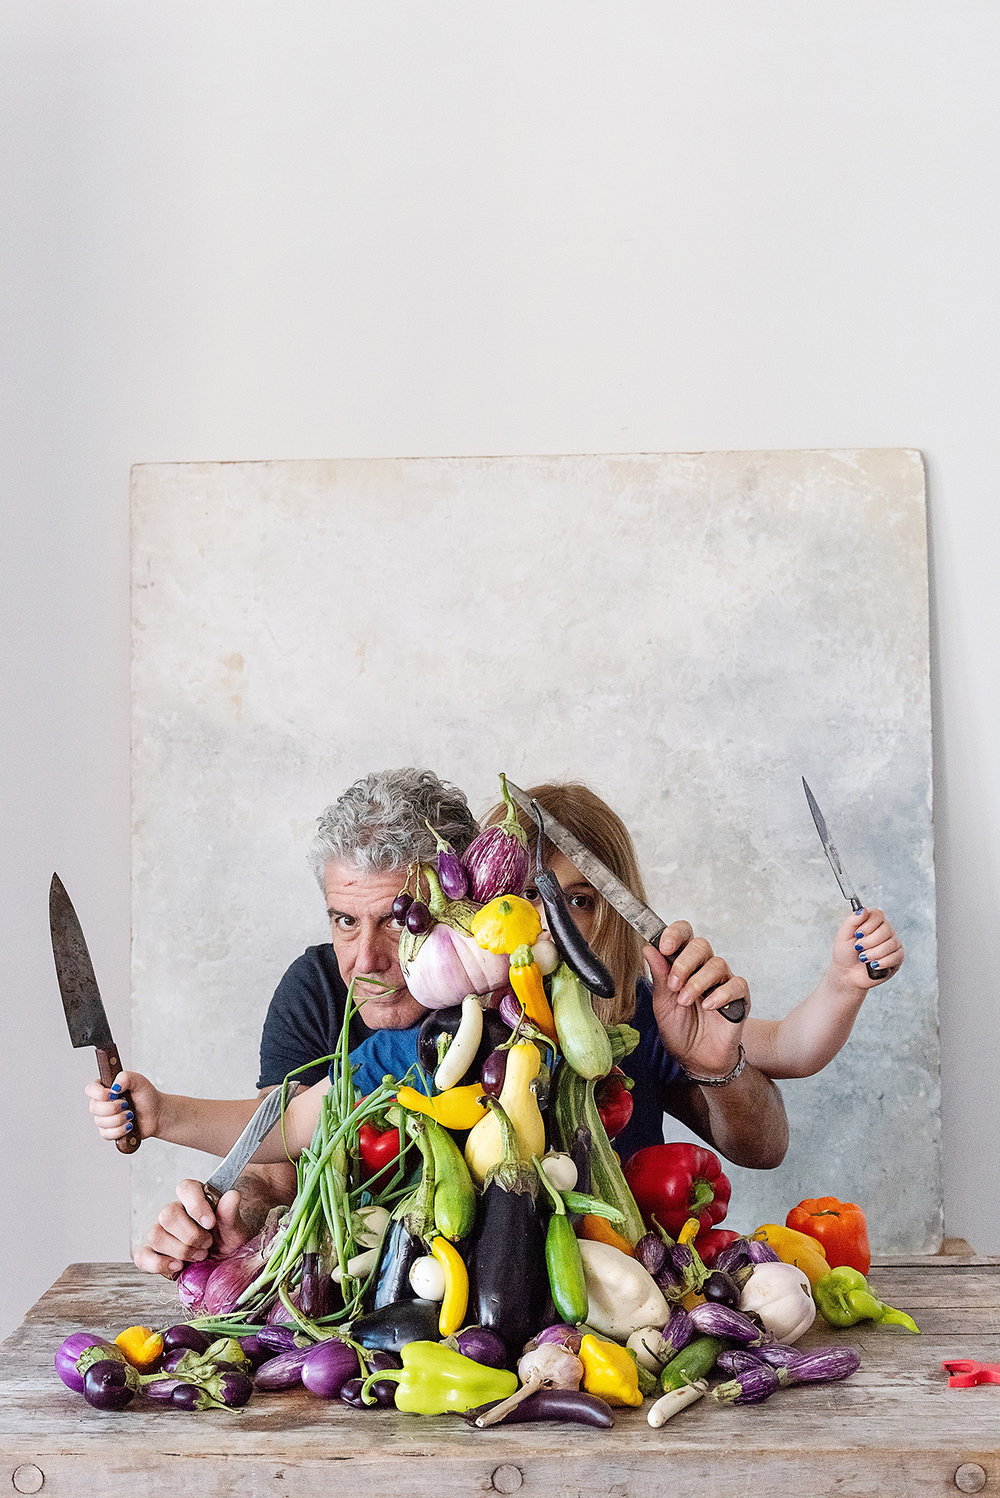 20150802_Anthony_Bourdain-007-Exposure_06aaabp1aa.jpg